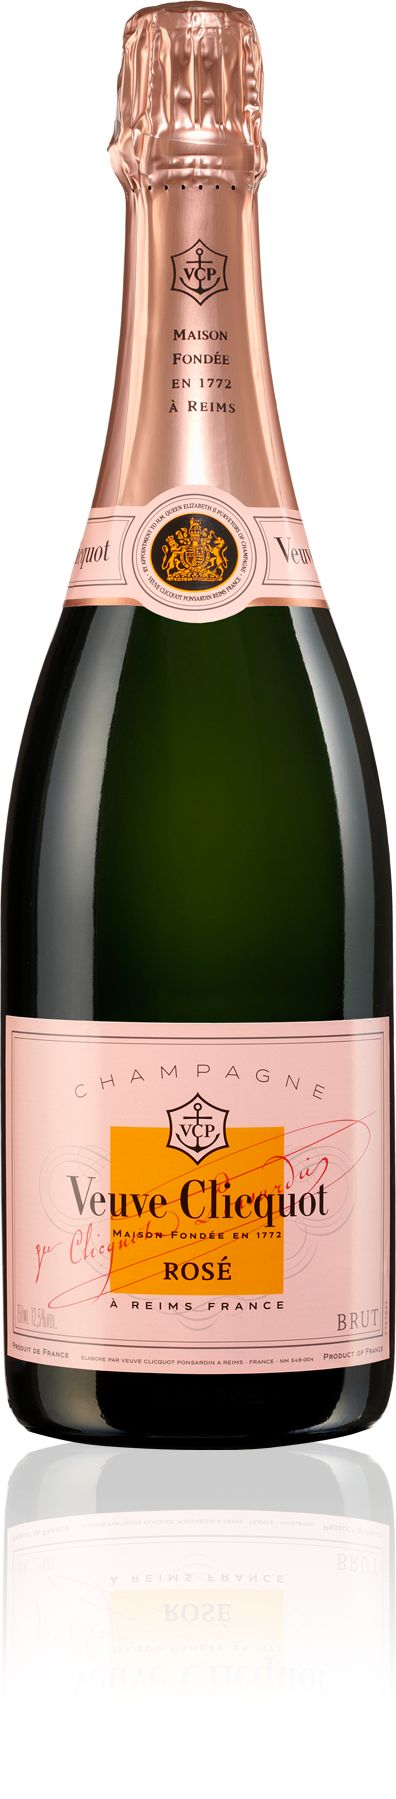 The Veuve Clicquot Rose NV. Soft and a nose full of all the red-skinned berries. Super easy and versatile champagne for any time of the day. Valentines Day ❤️